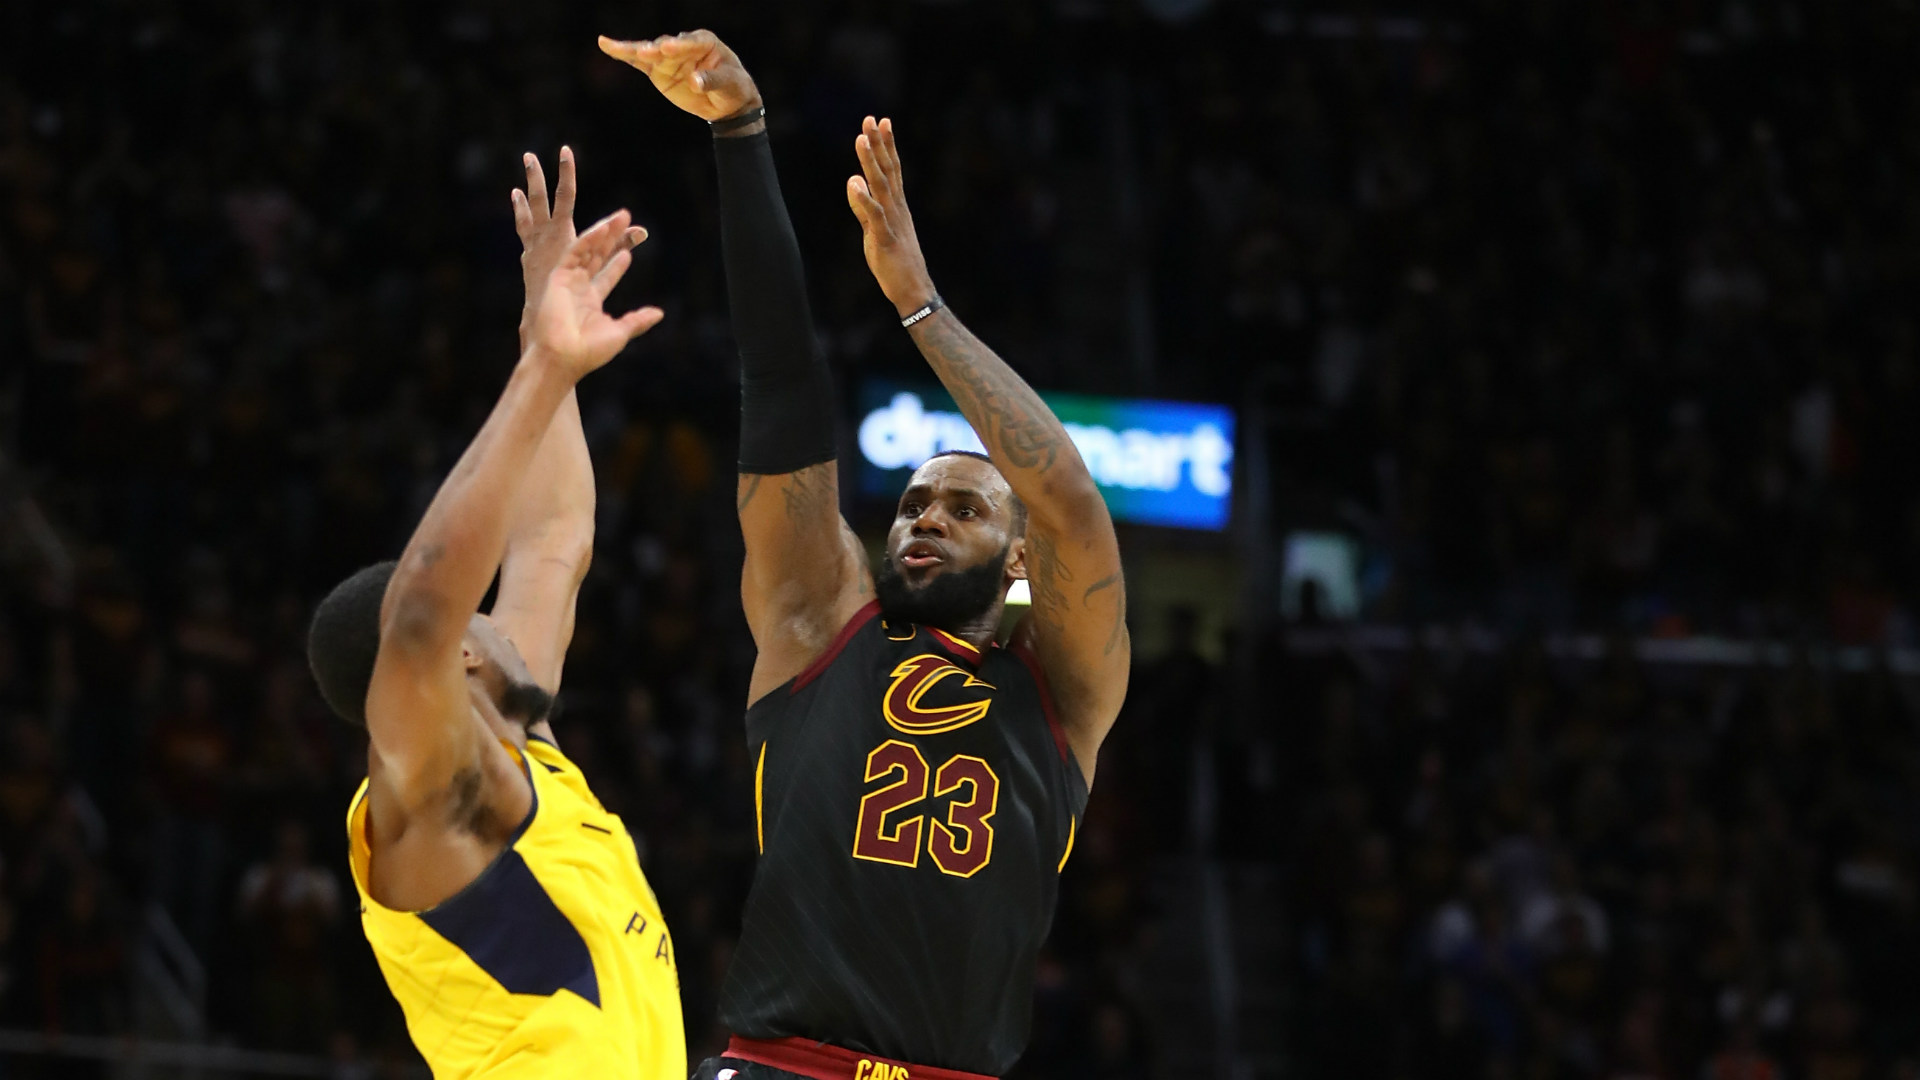 Lebron-james-042618-ftr-gettyjpg_gvzpek9fm5ds15xlsgevqztxy